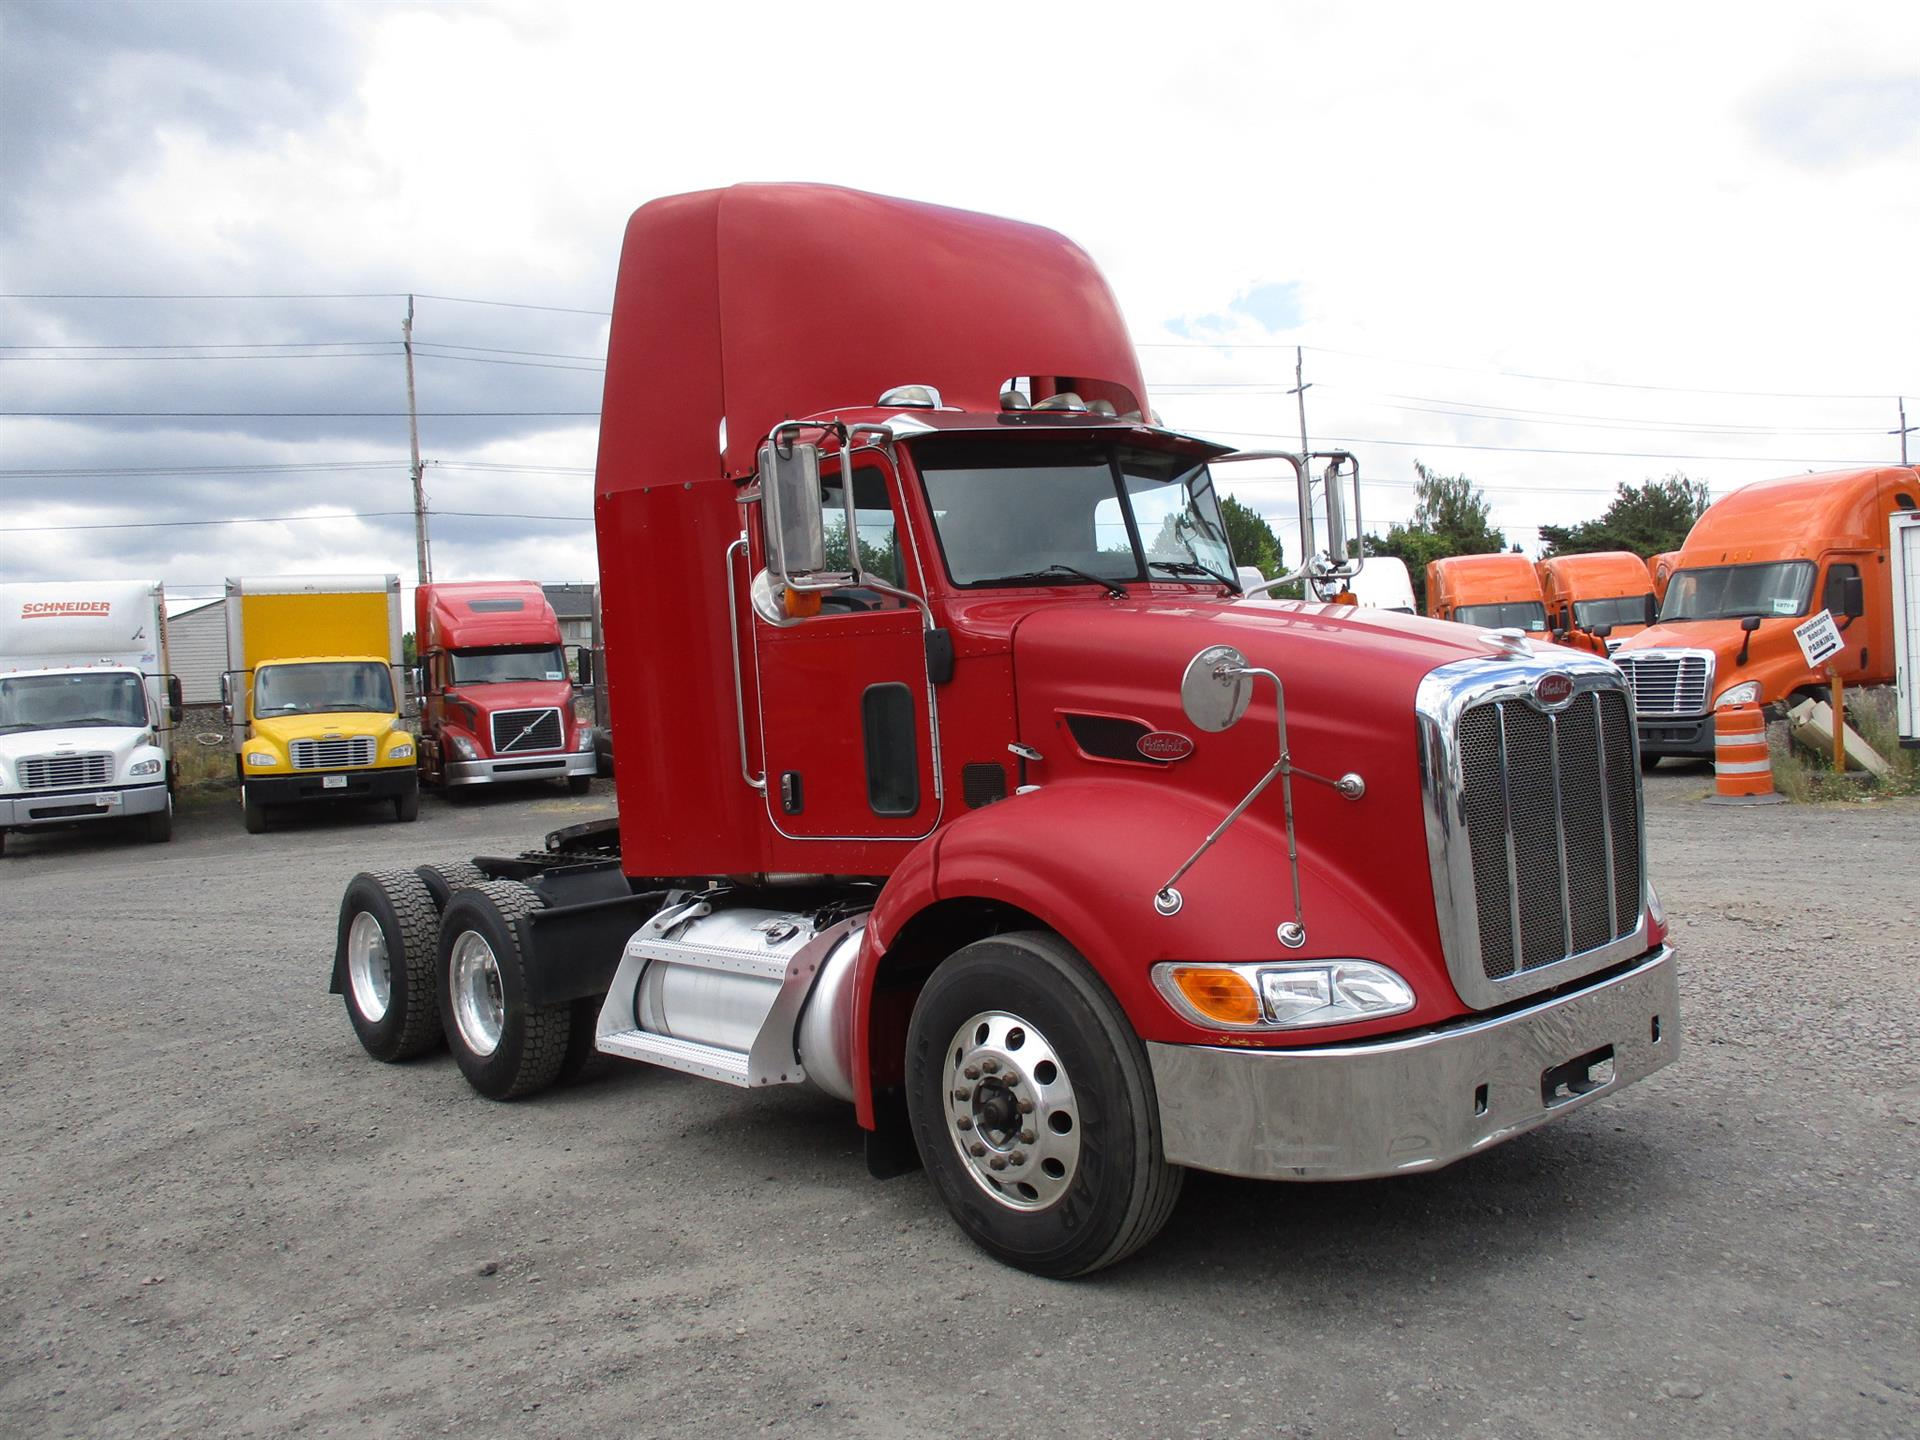 USED 2009 PETERBILT 384 DAYCAB TRUCK #125277